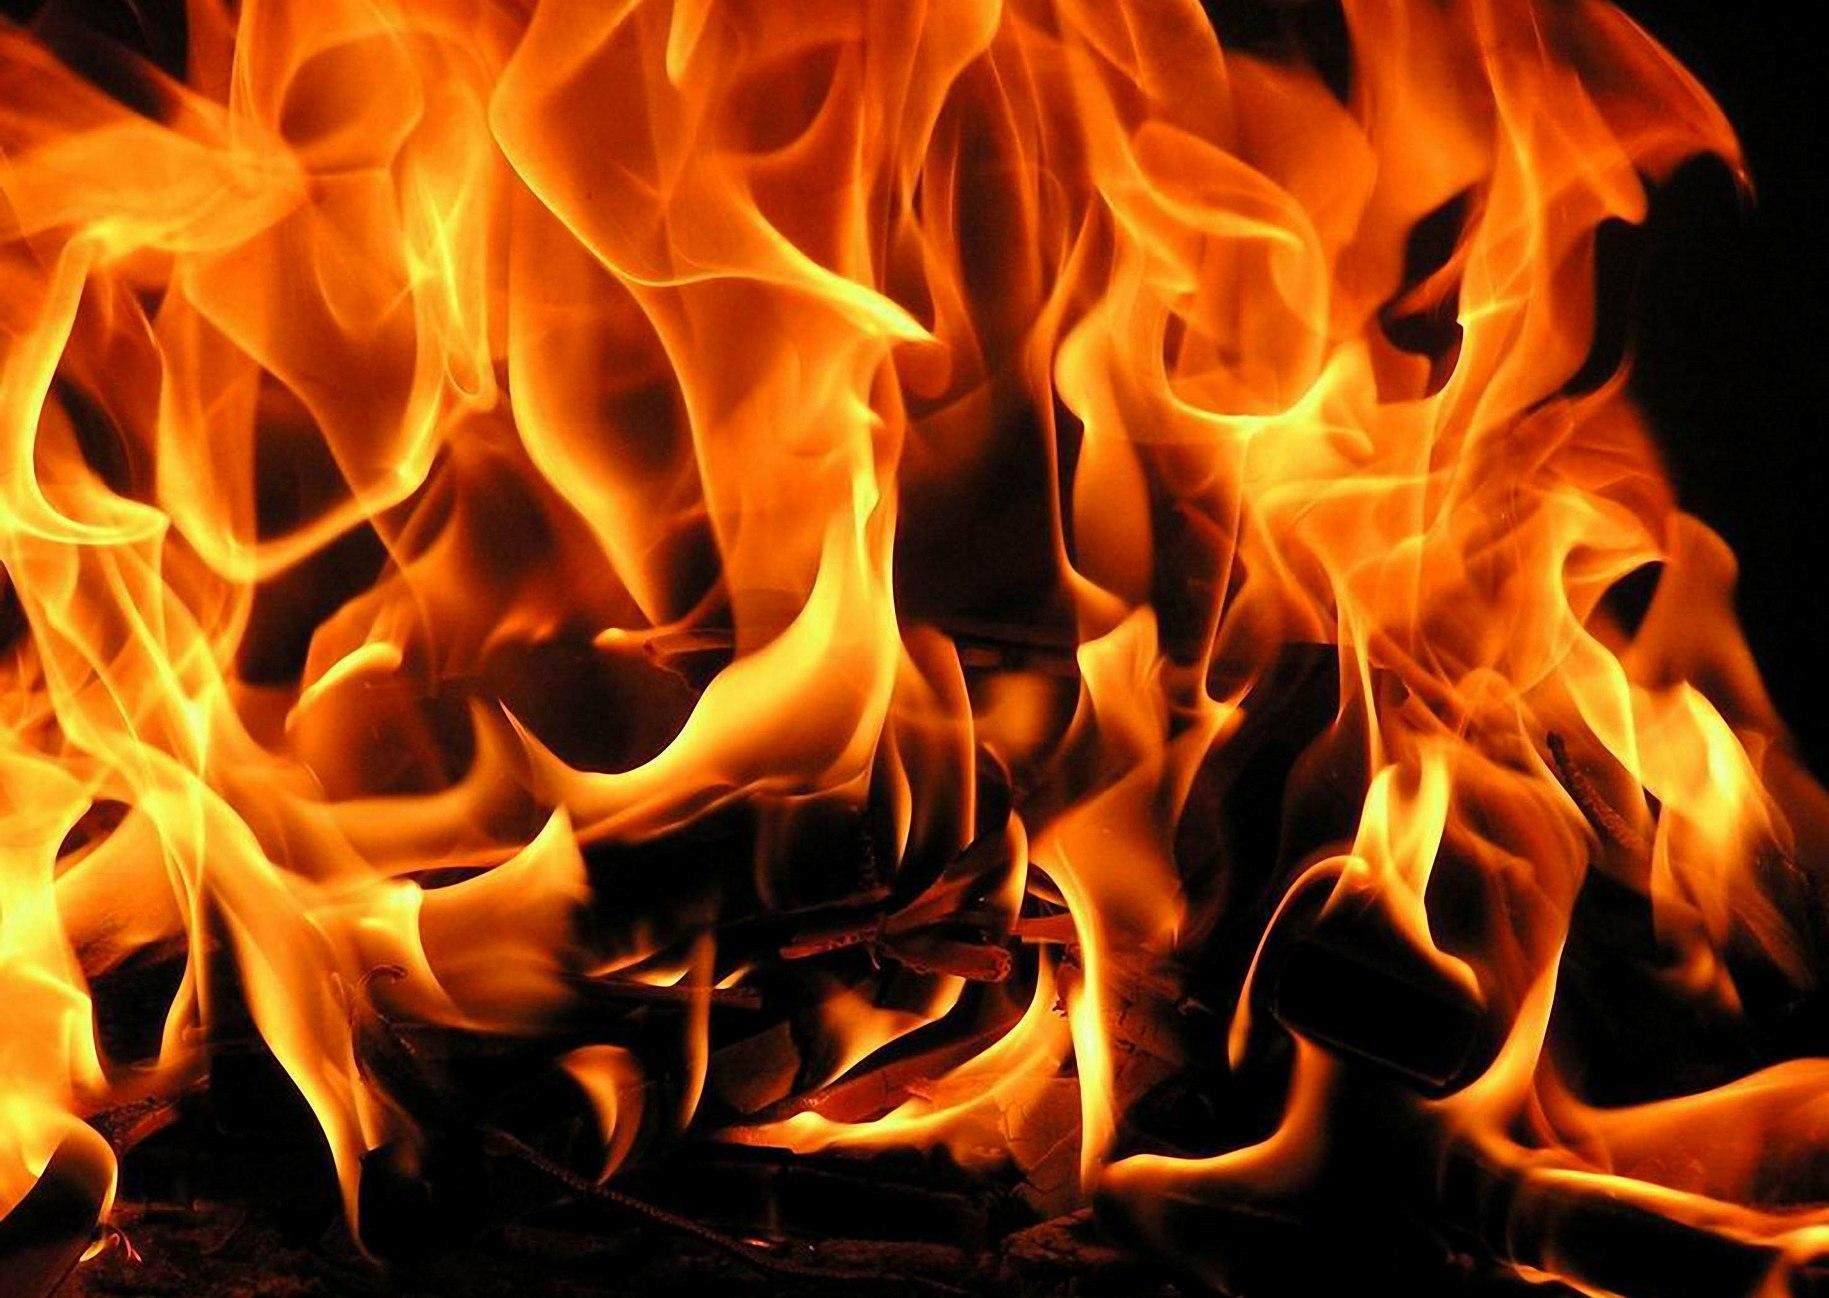 Moving Fire Wallpaper